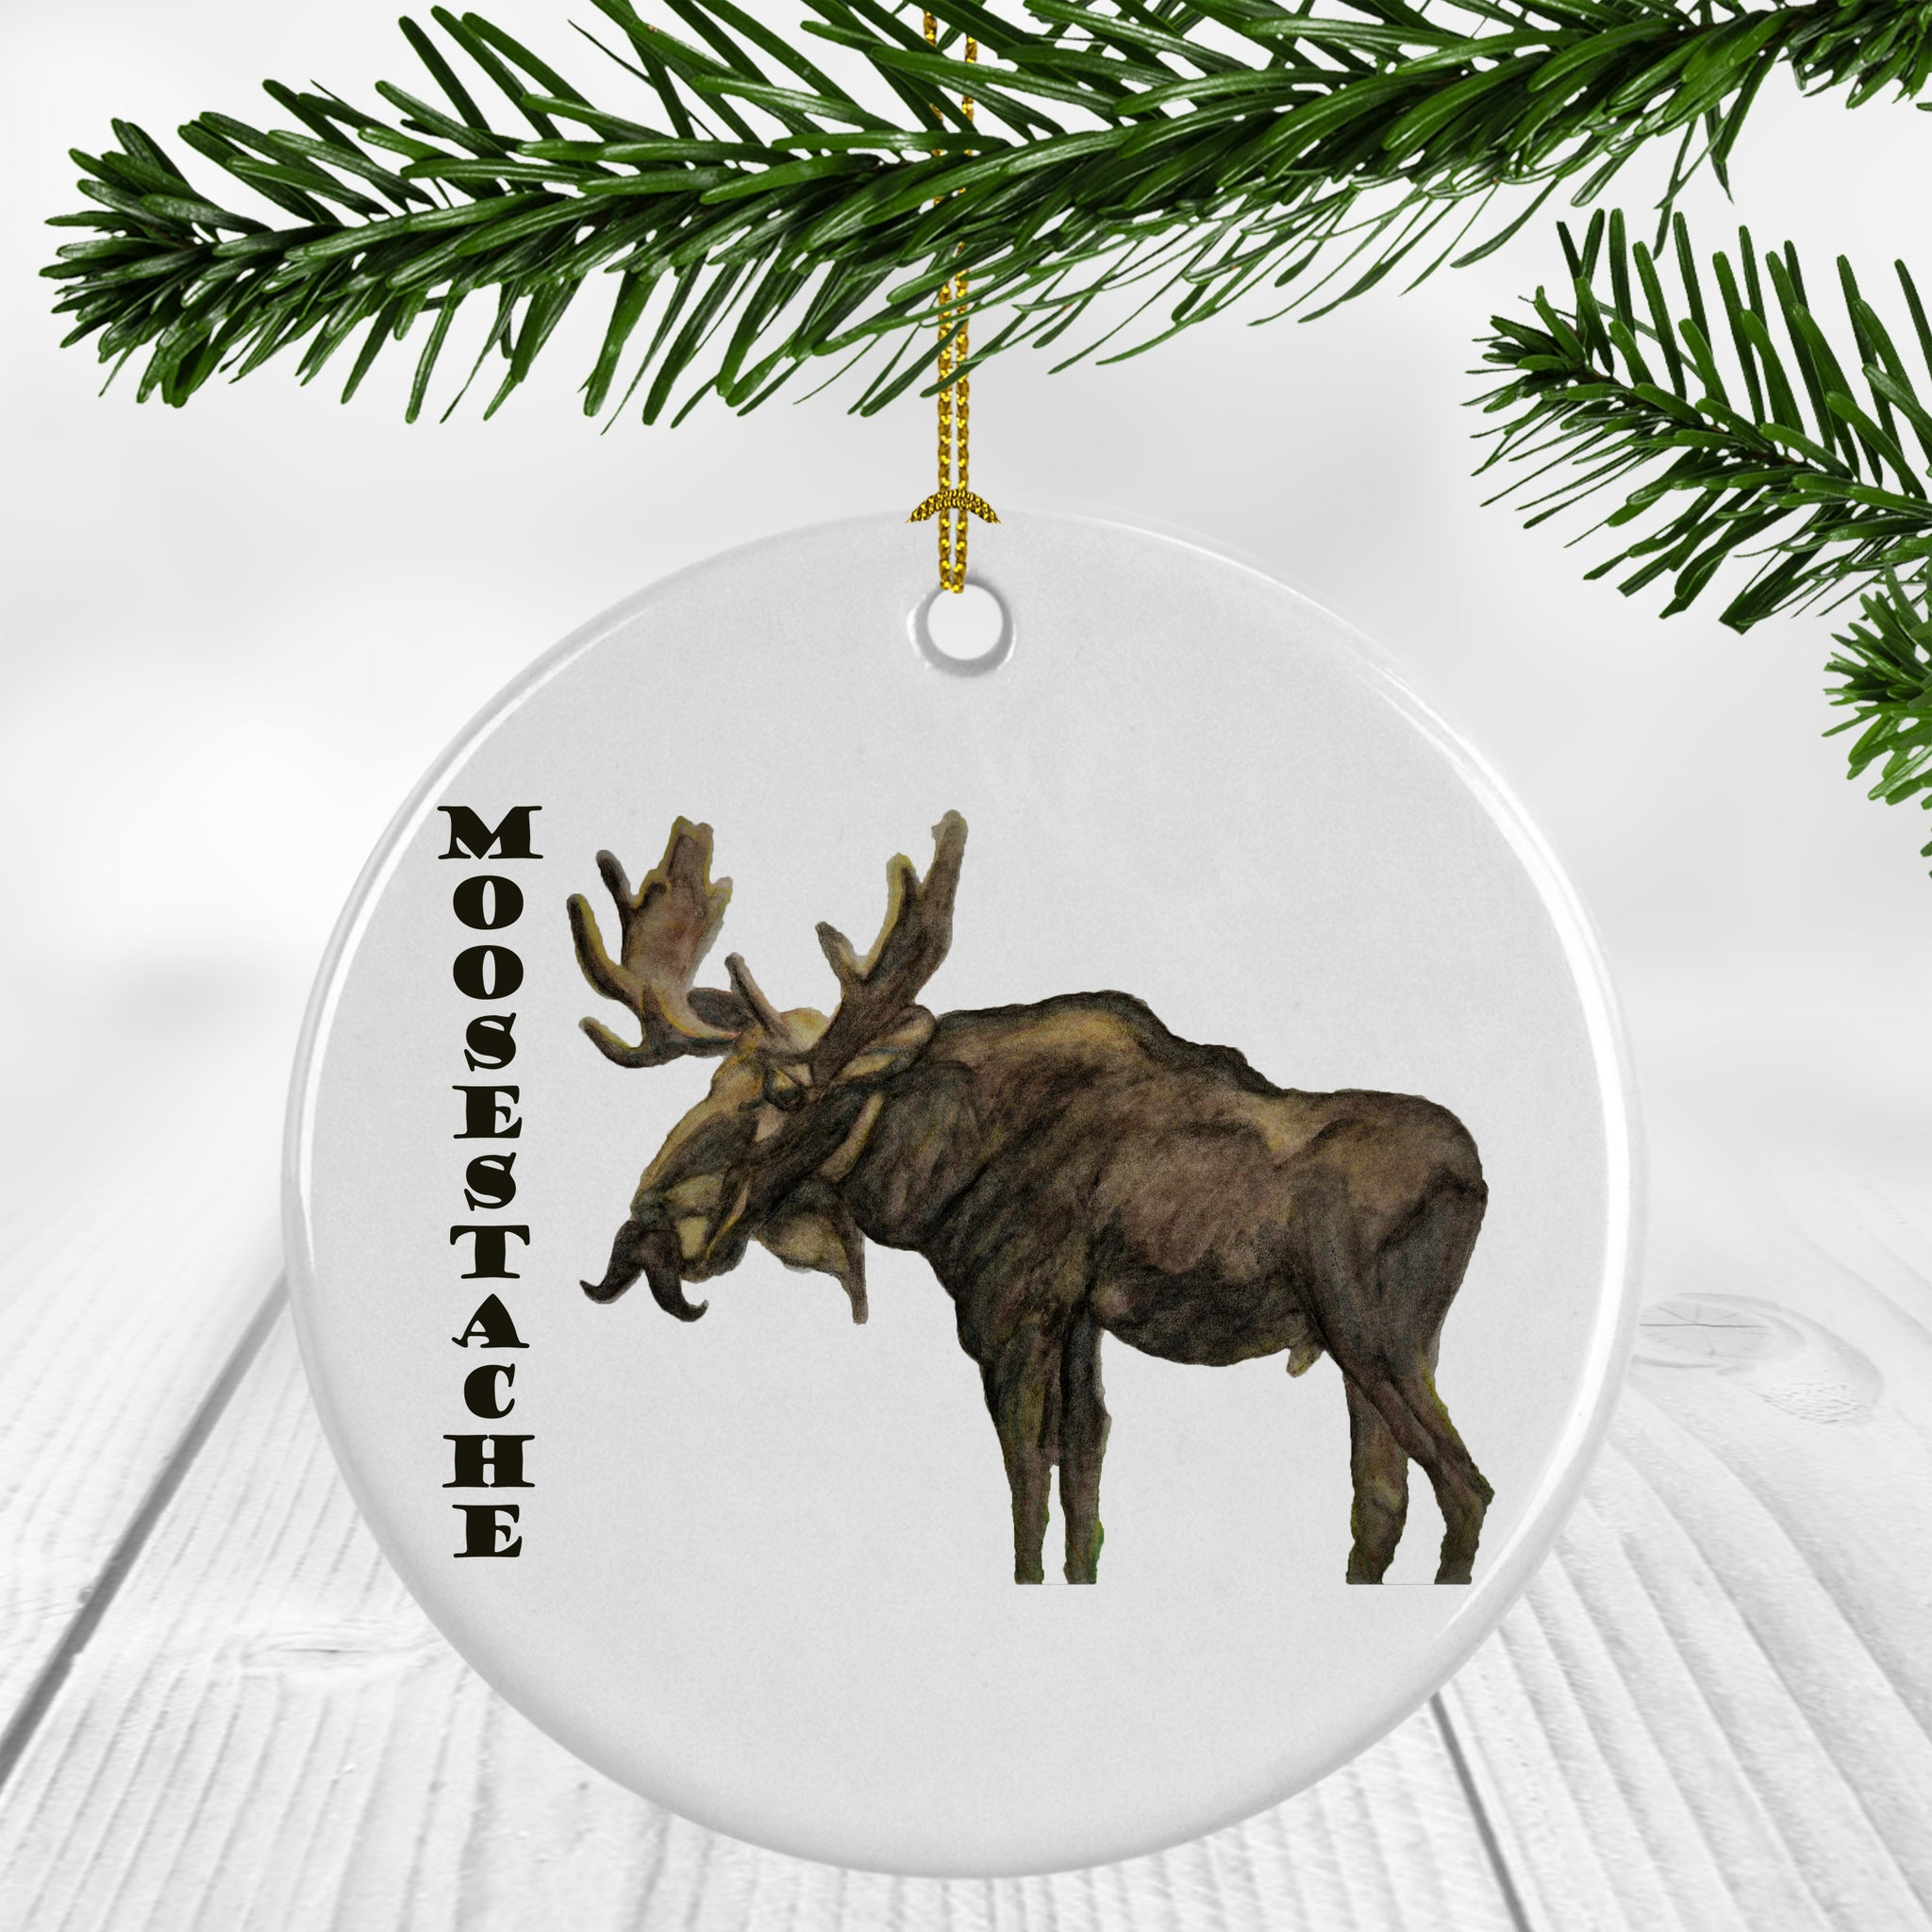 Moosestache Ornament